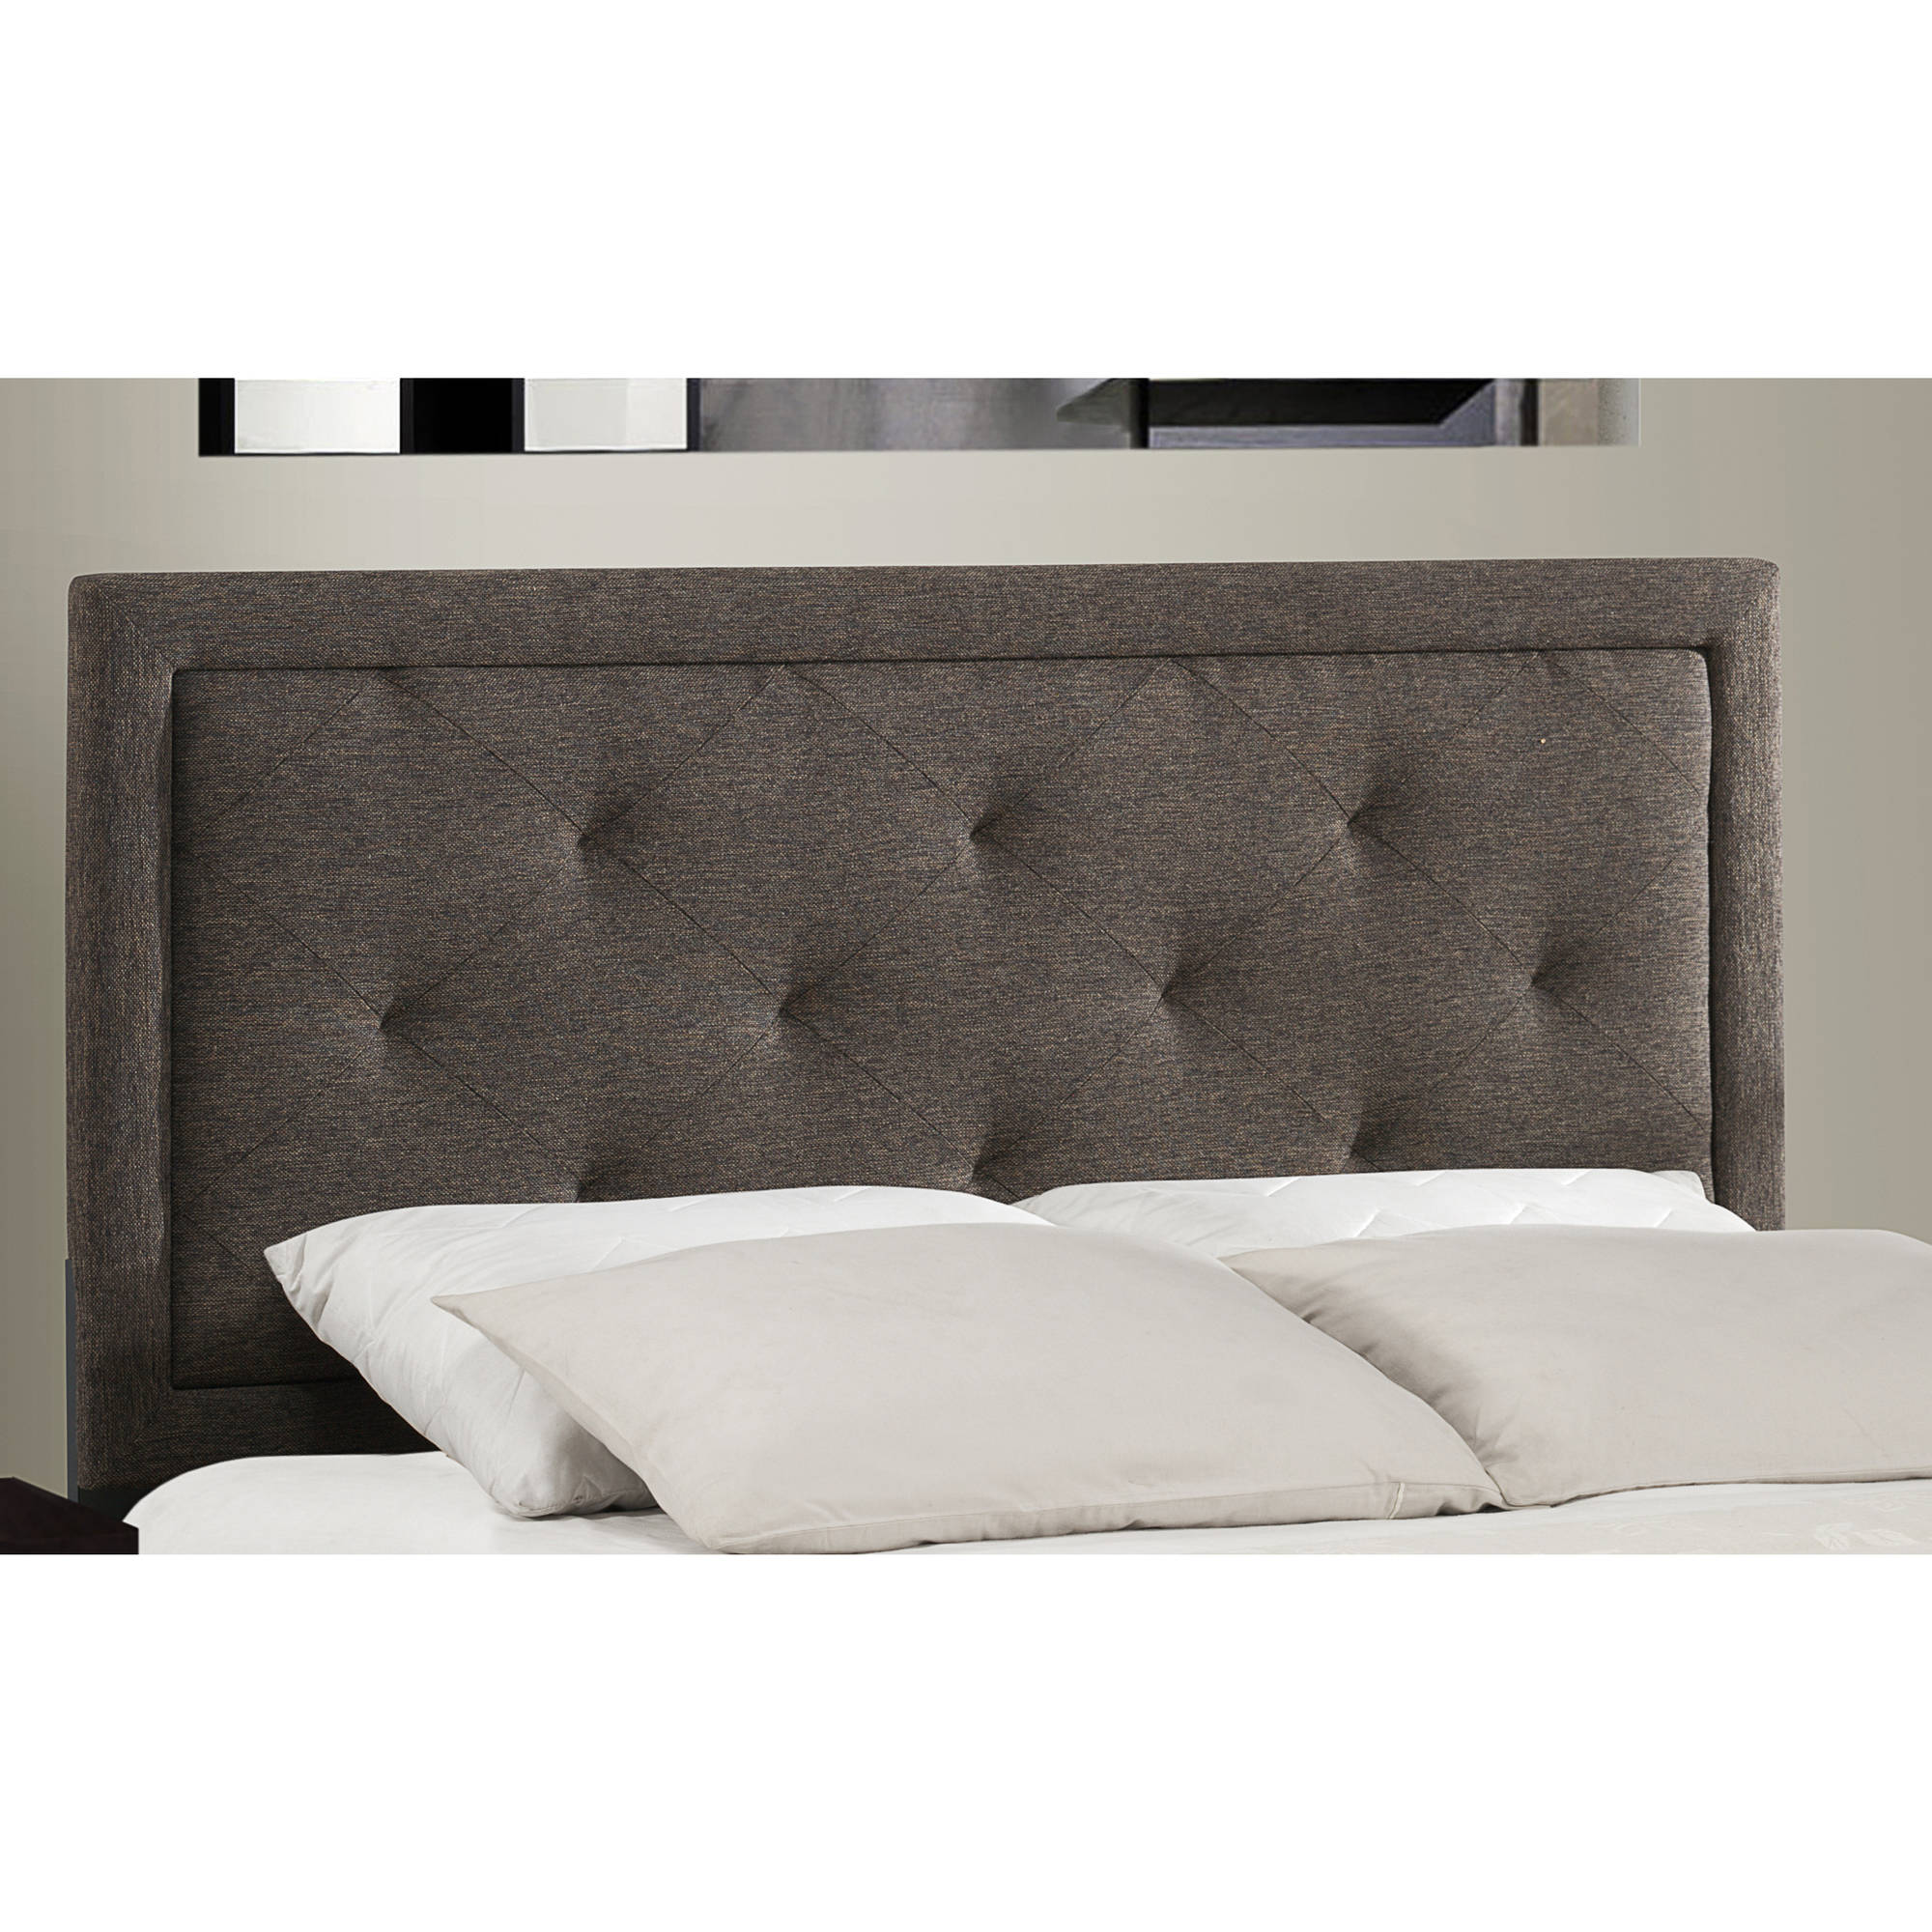 Hillsdale Furniture Becker King Headboard with Bedframe, Black   Brown Fabric by Hillsdale